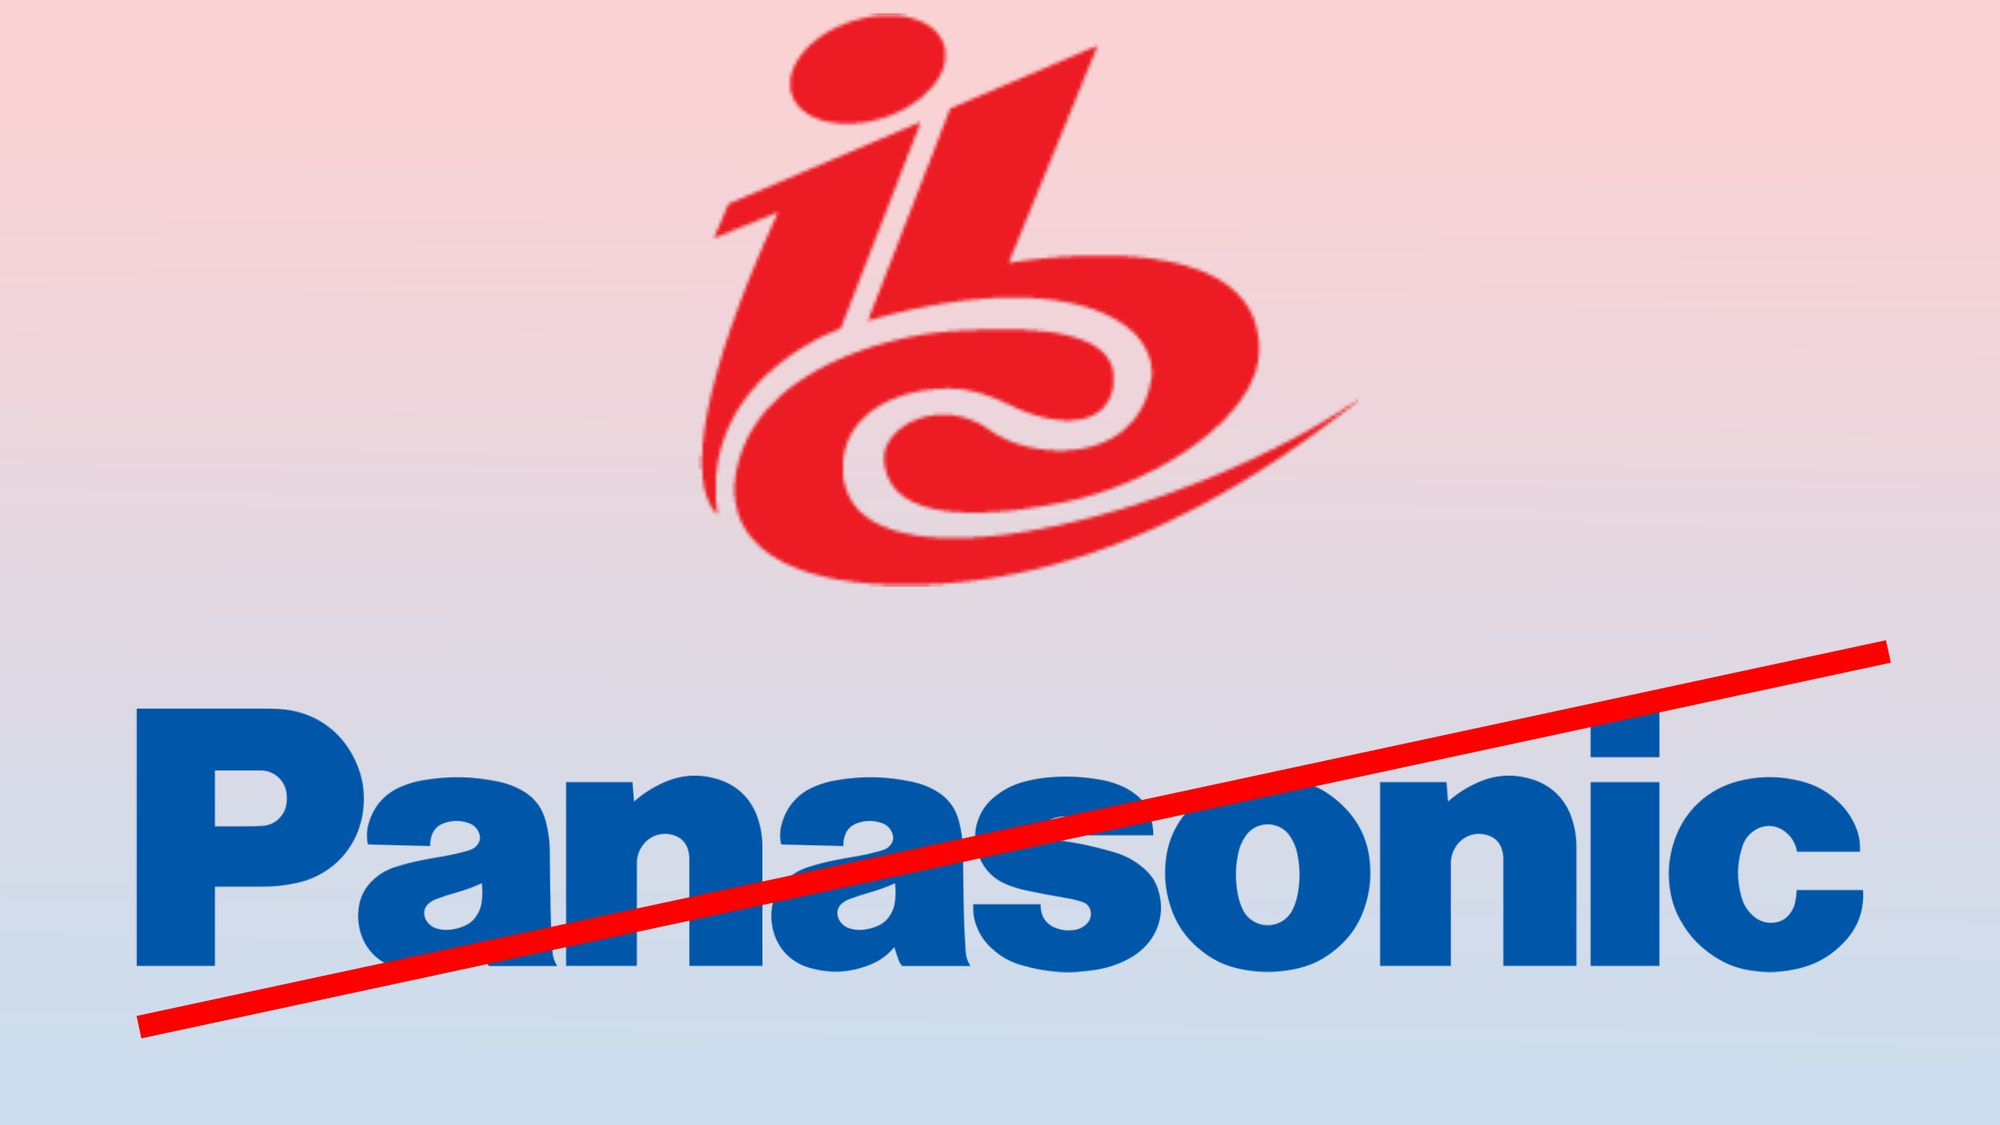 Panasonic pulls out of IBC 2020 in September